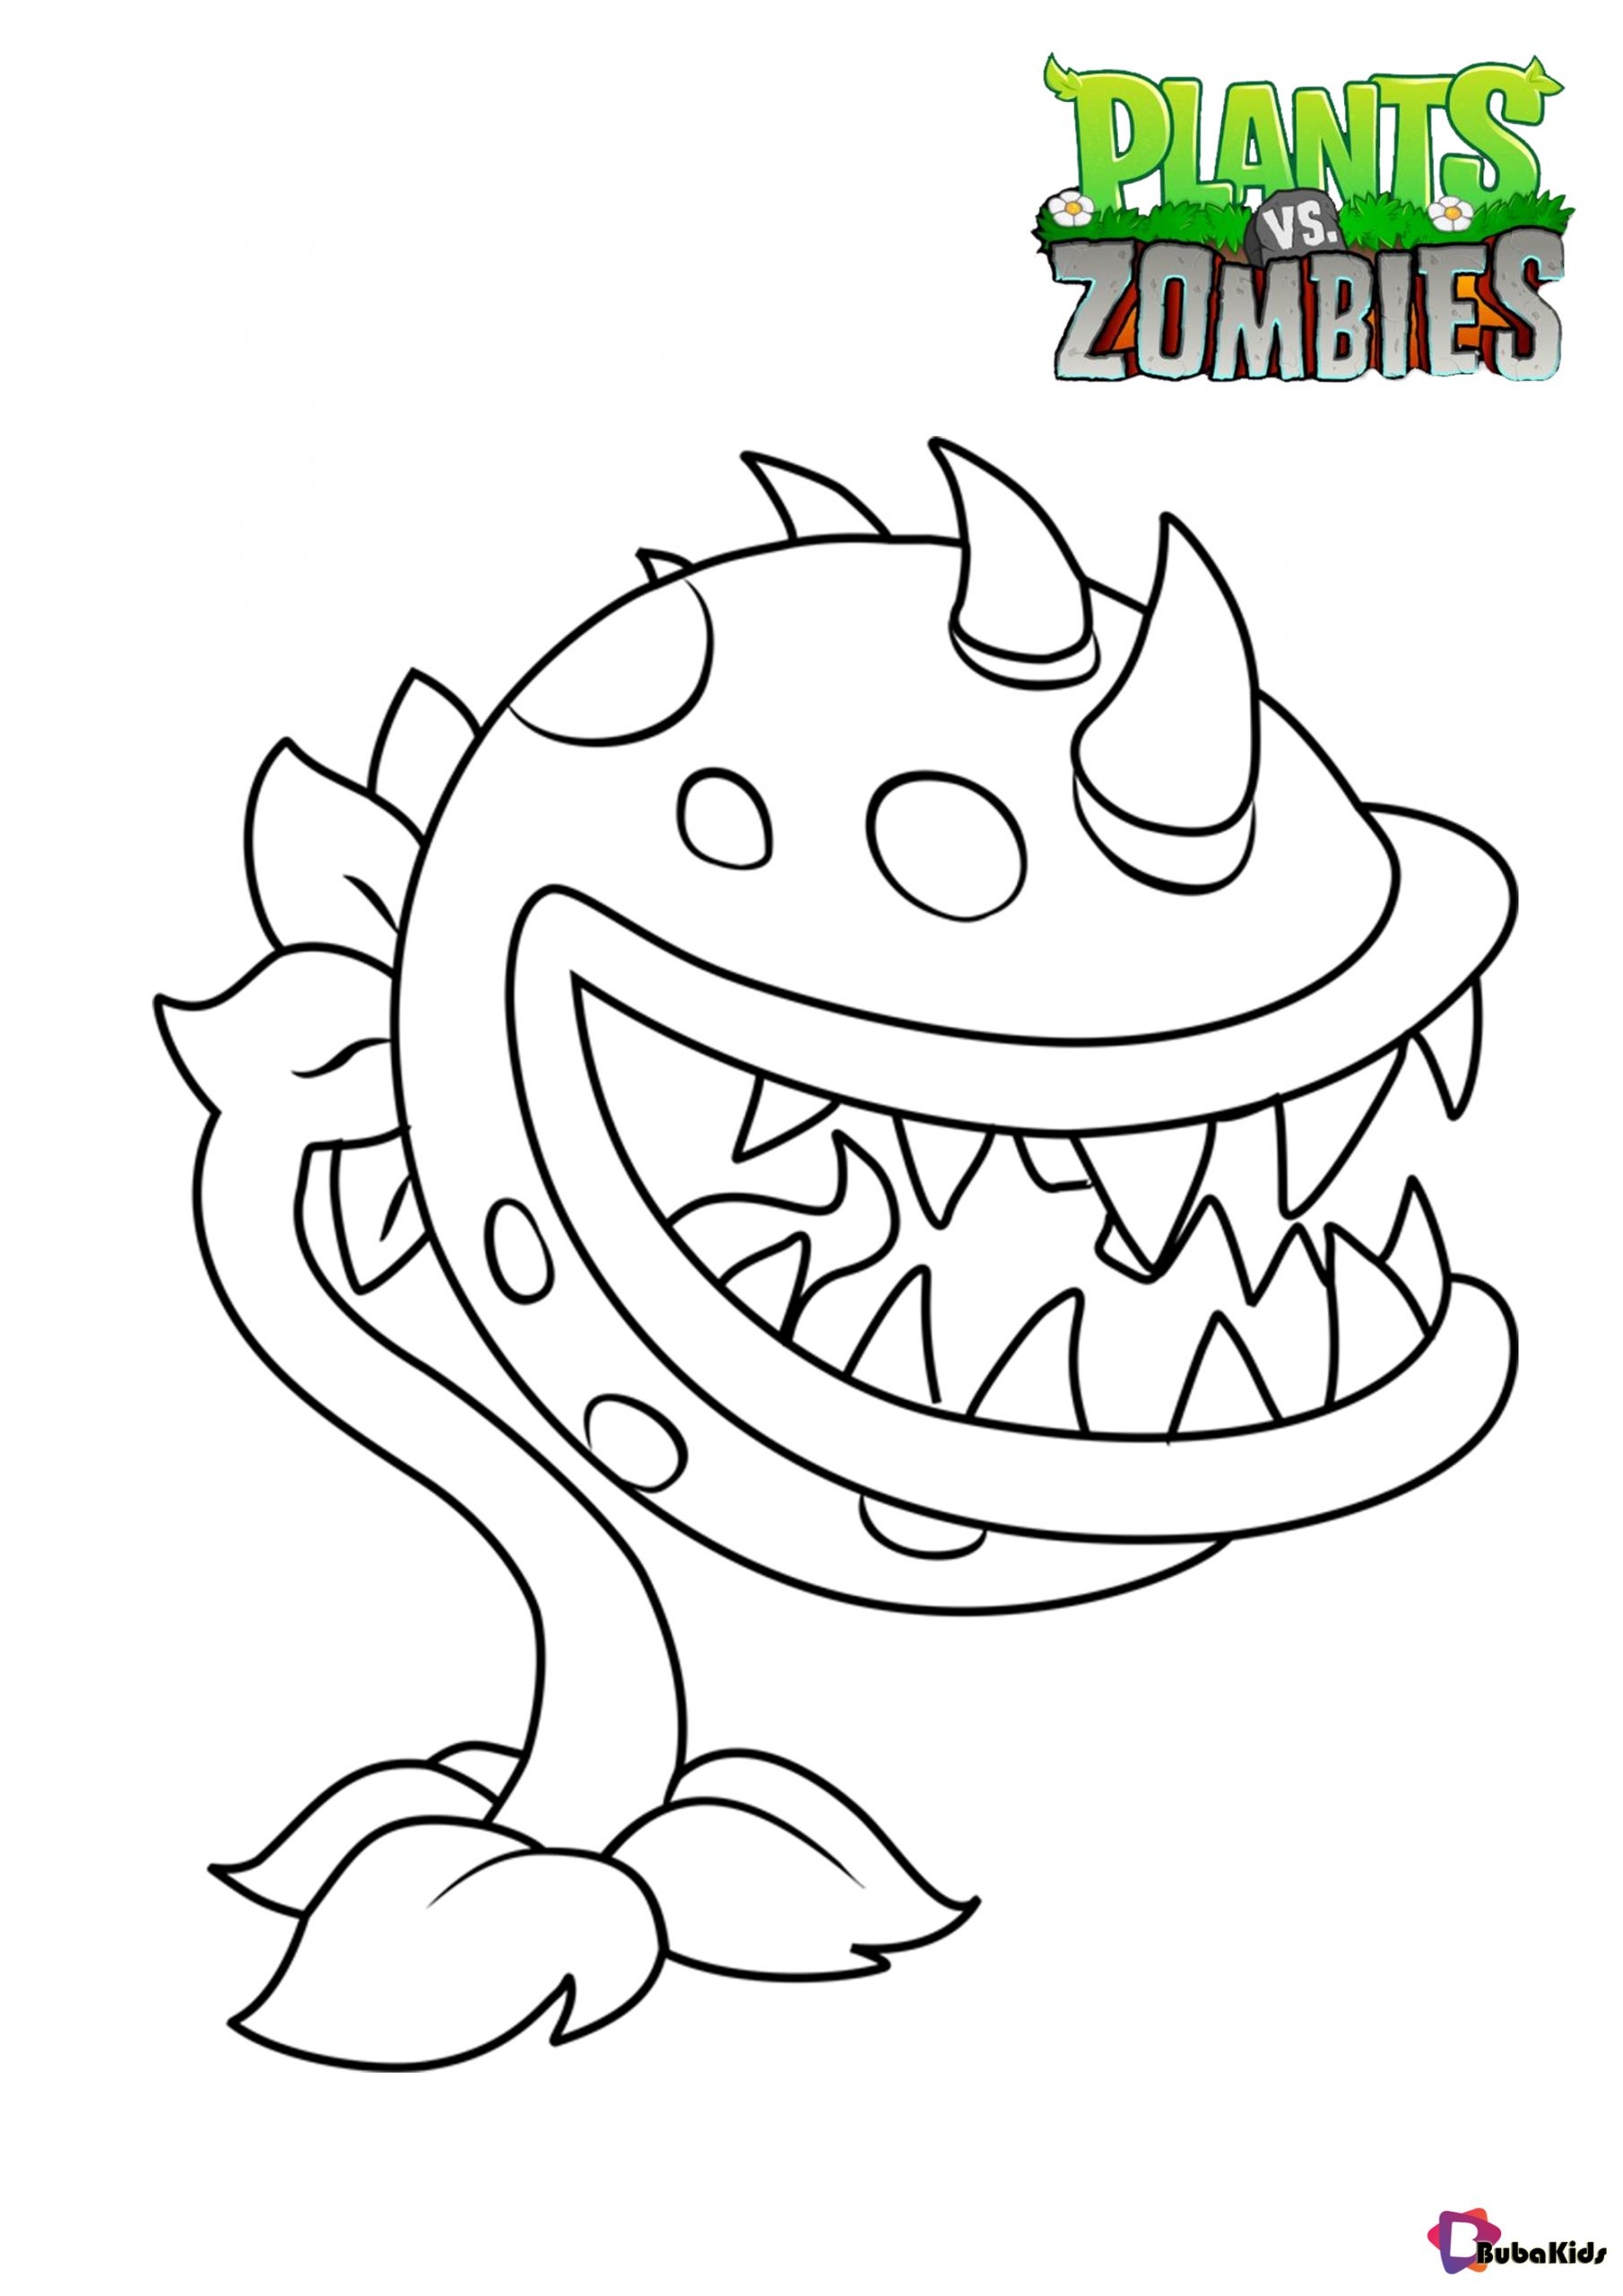 Plants Vs Zombies Chomper Coloring Pages